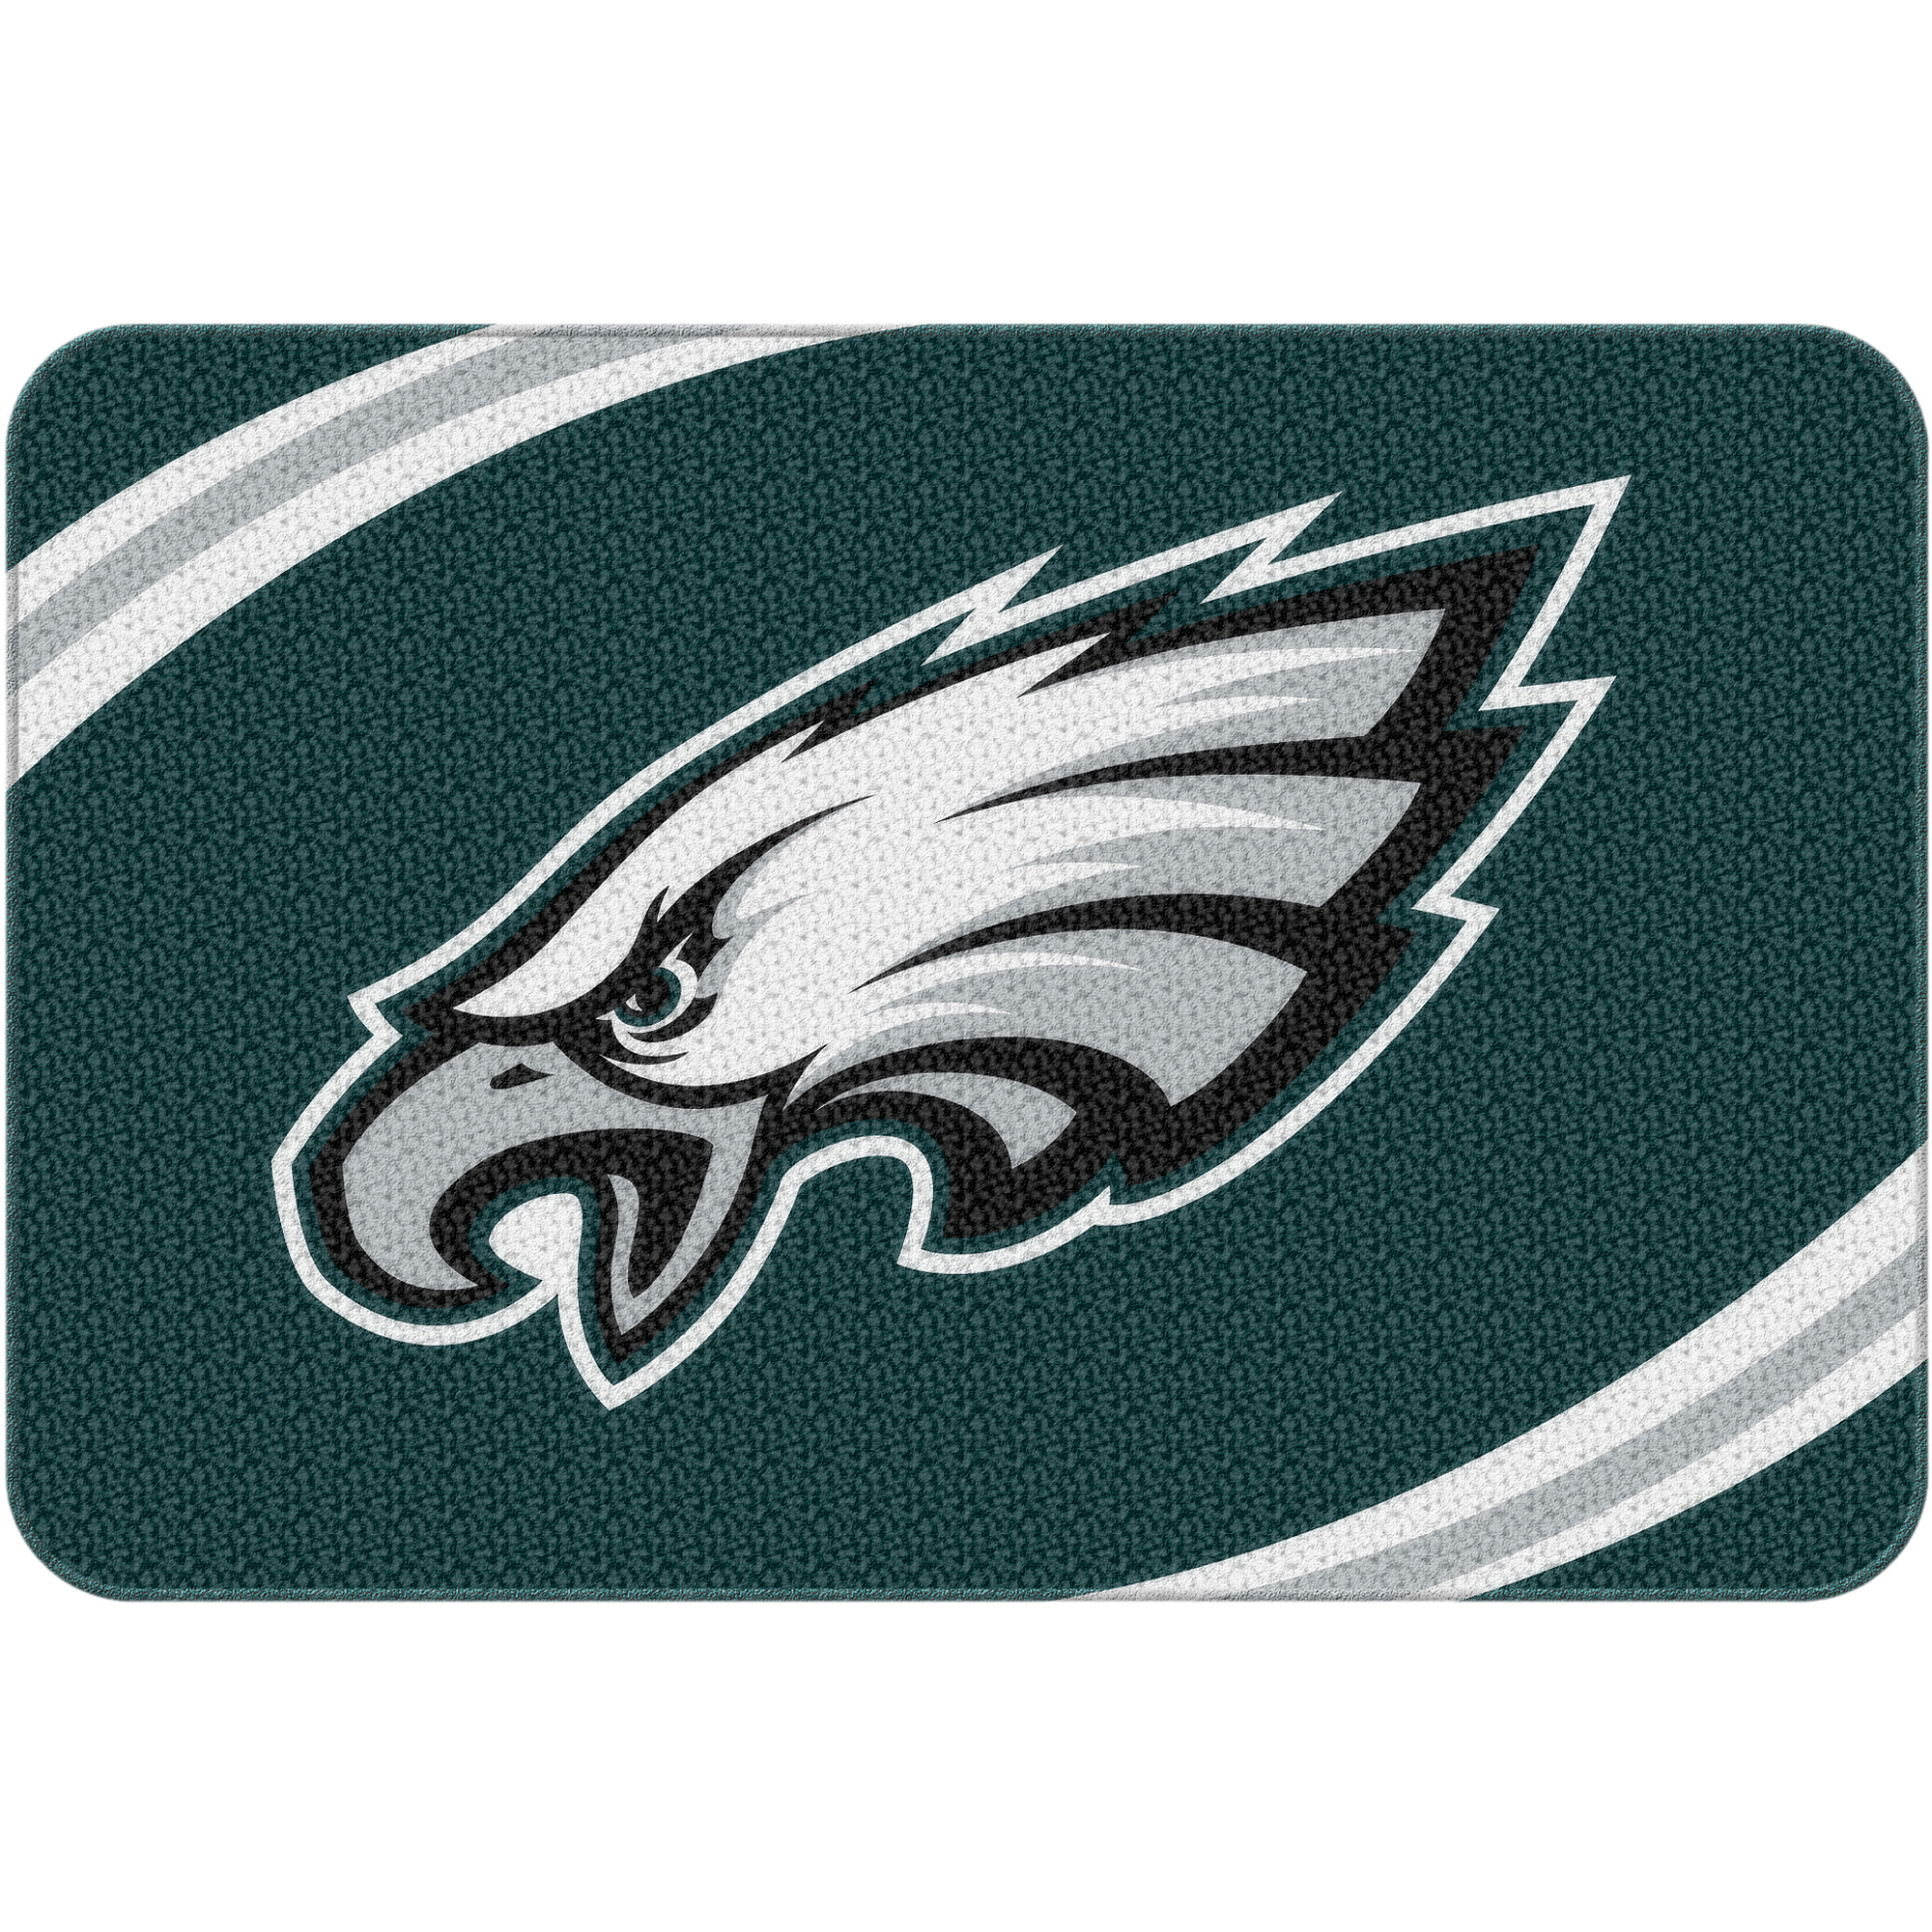 "NFL Philadelphia Eagles 20"" x 30"" Round Edge Bath Rug"